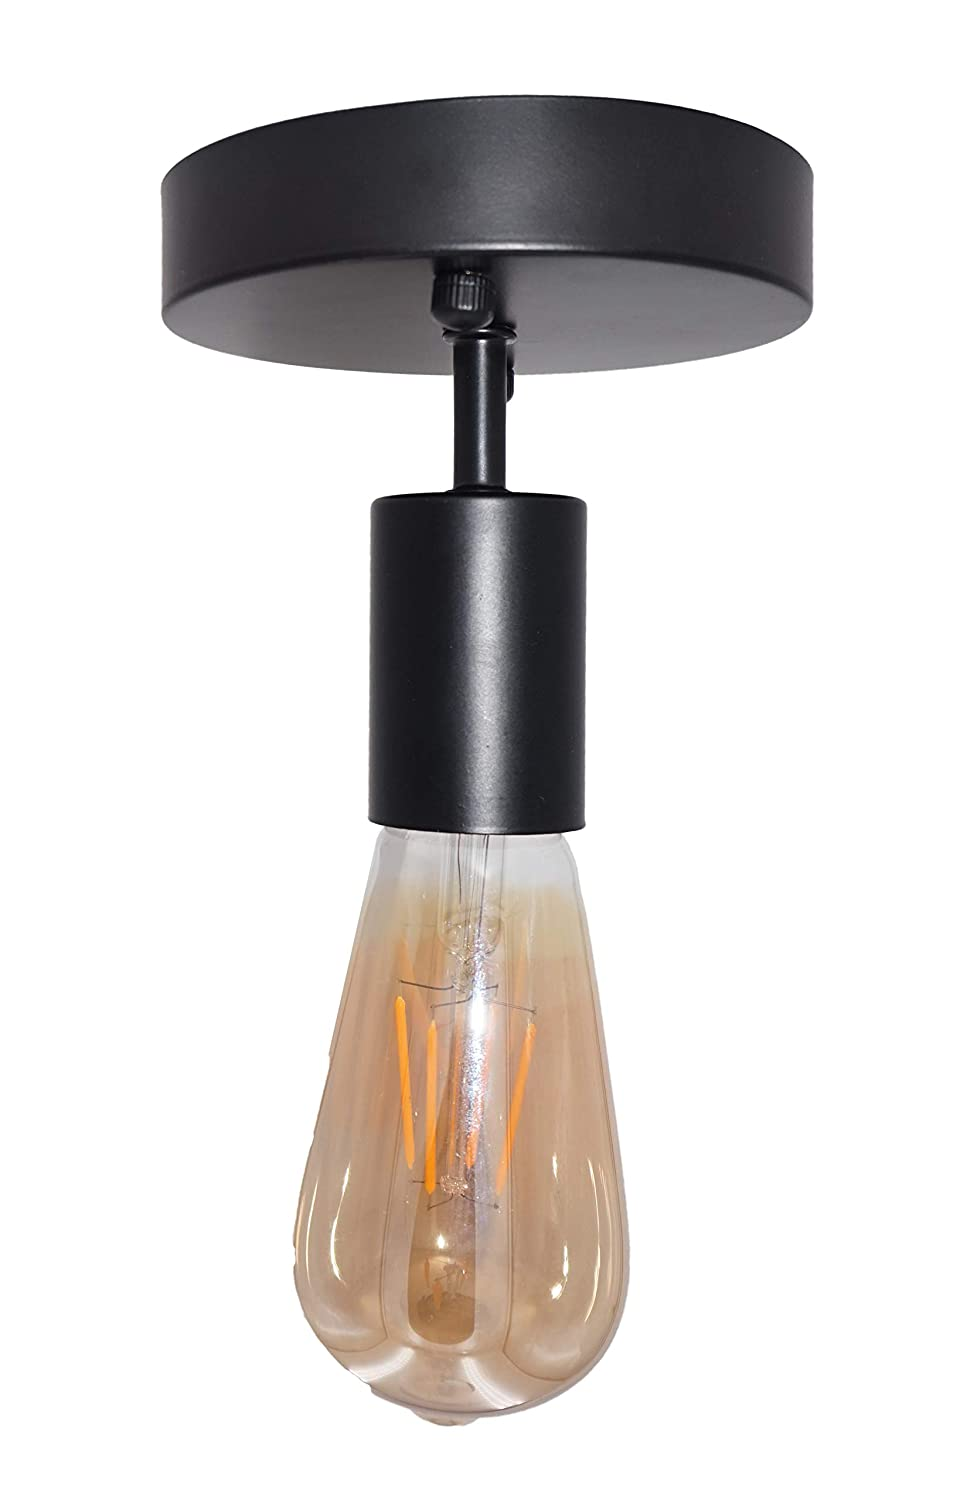 BRIGHTESS W6969 Industrial Metal Cage Ceiling Light American Retro Manipulator E26 Base Fixtures with Country Hallway Coffee Shop Office Bedroom BS